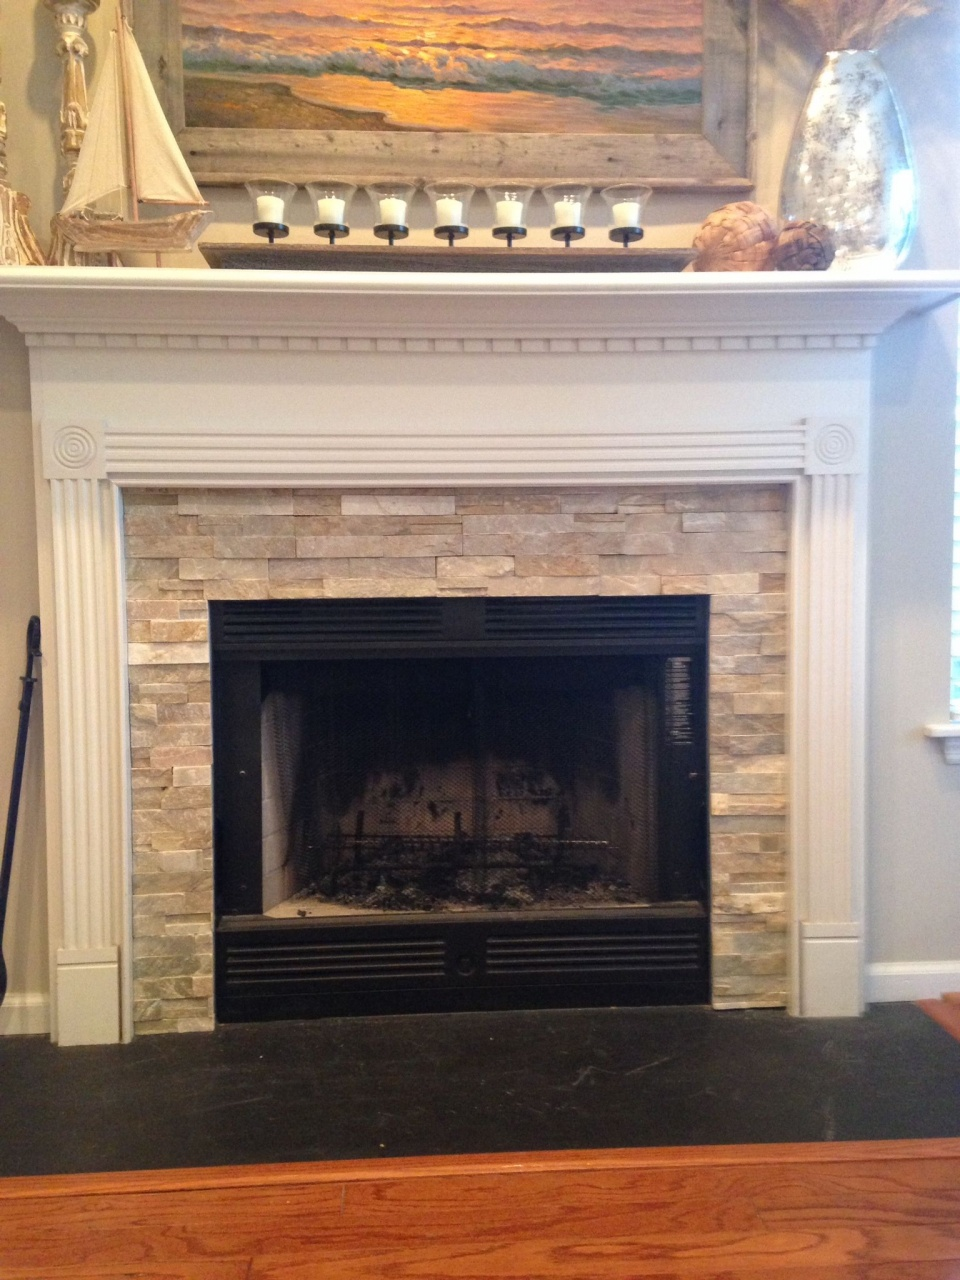 Slate Tiles for Fireplace Best Of Fireplace Hearth Ideas with Tiles or Slate Fireplace Idea